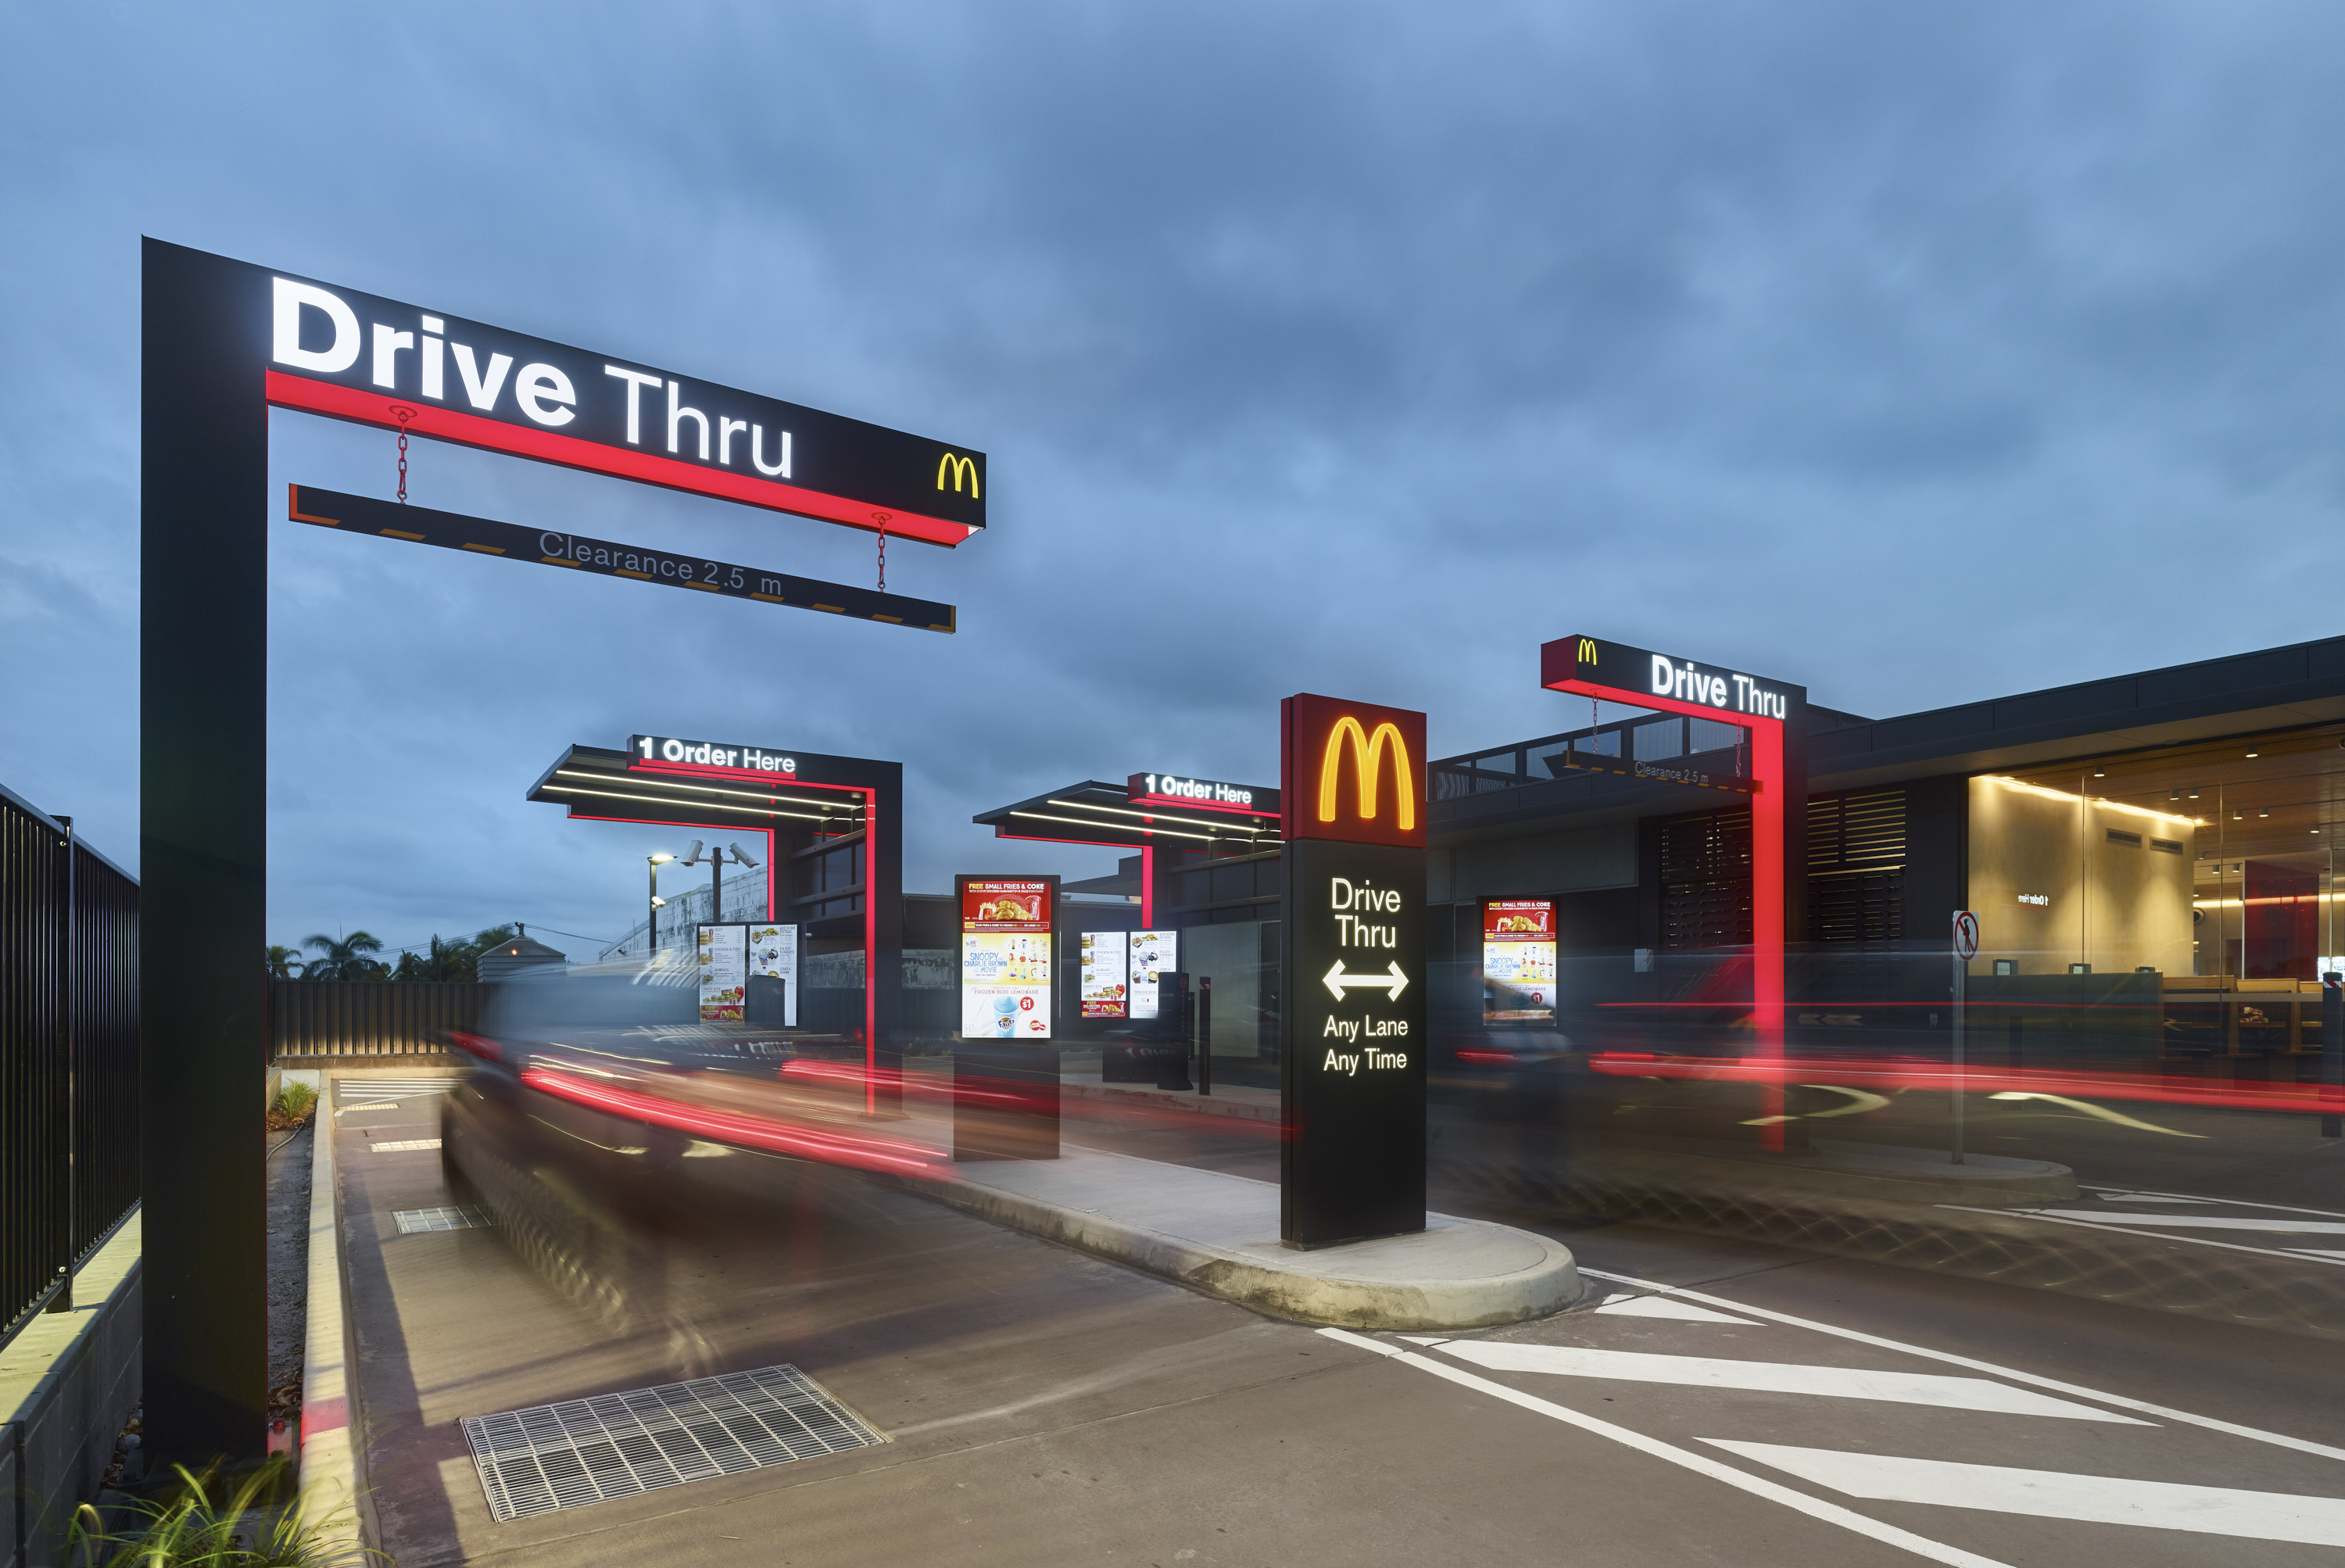 McDonald's Drive Thru AUS & NZ